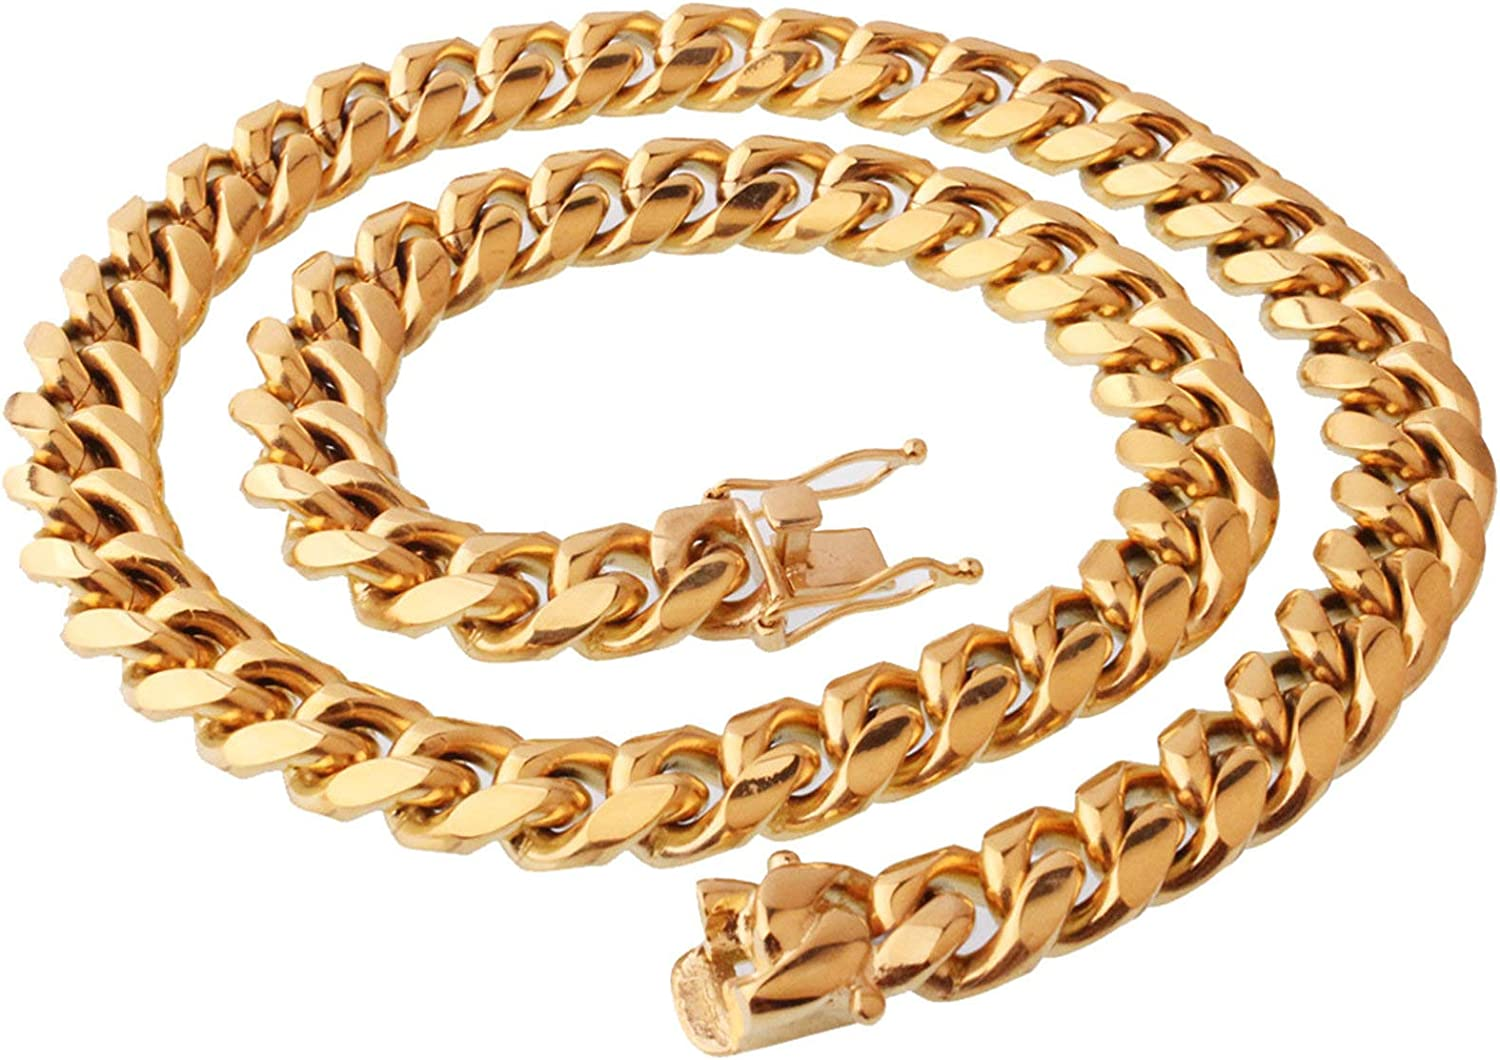 Aooaz Stainless Steel Necklaces Men Cuban Curb Link Chain Necklace Necklace Minimalist Punk Chain Necklace W:8-14mm L:18-36inch